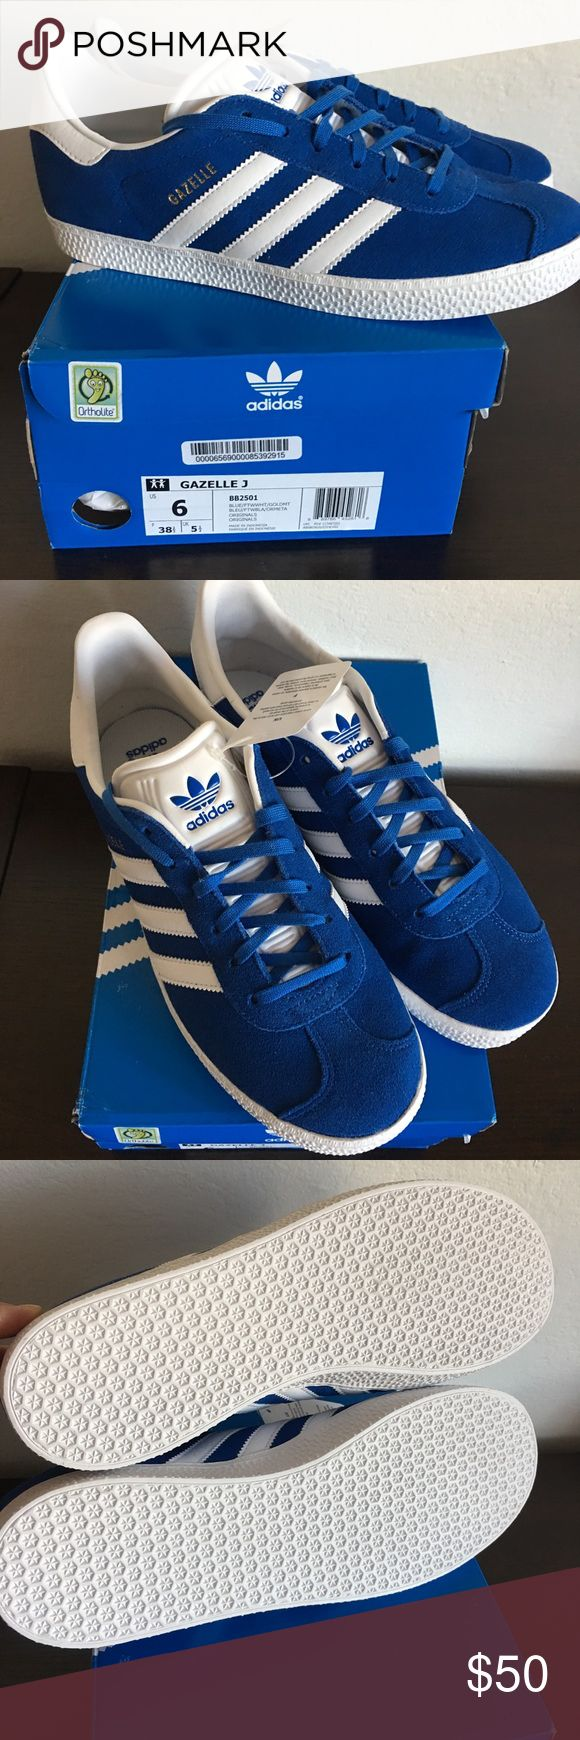 Adidas Gazelle Youth Size 6 Brand brand with box, youth size 6. For both girl and boy. adidas Shoes Sneakers